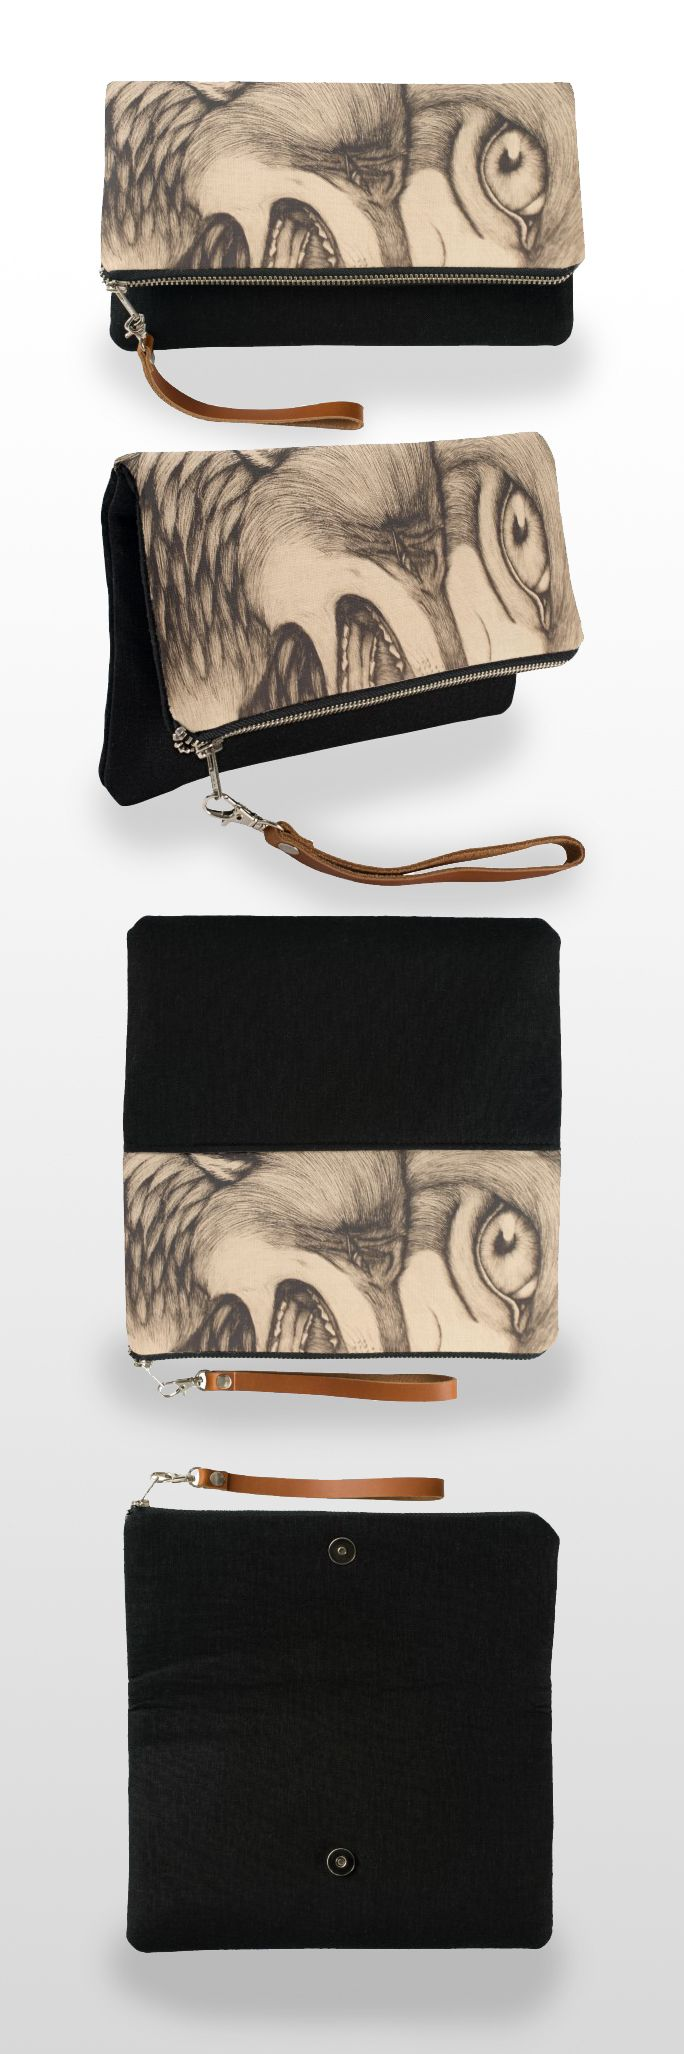 """You promised"" Clutch Bag  #wolf #wolves #art #illustration #pendrawing #blackandwhite #sepia #realistic #products #stuff #forsale"